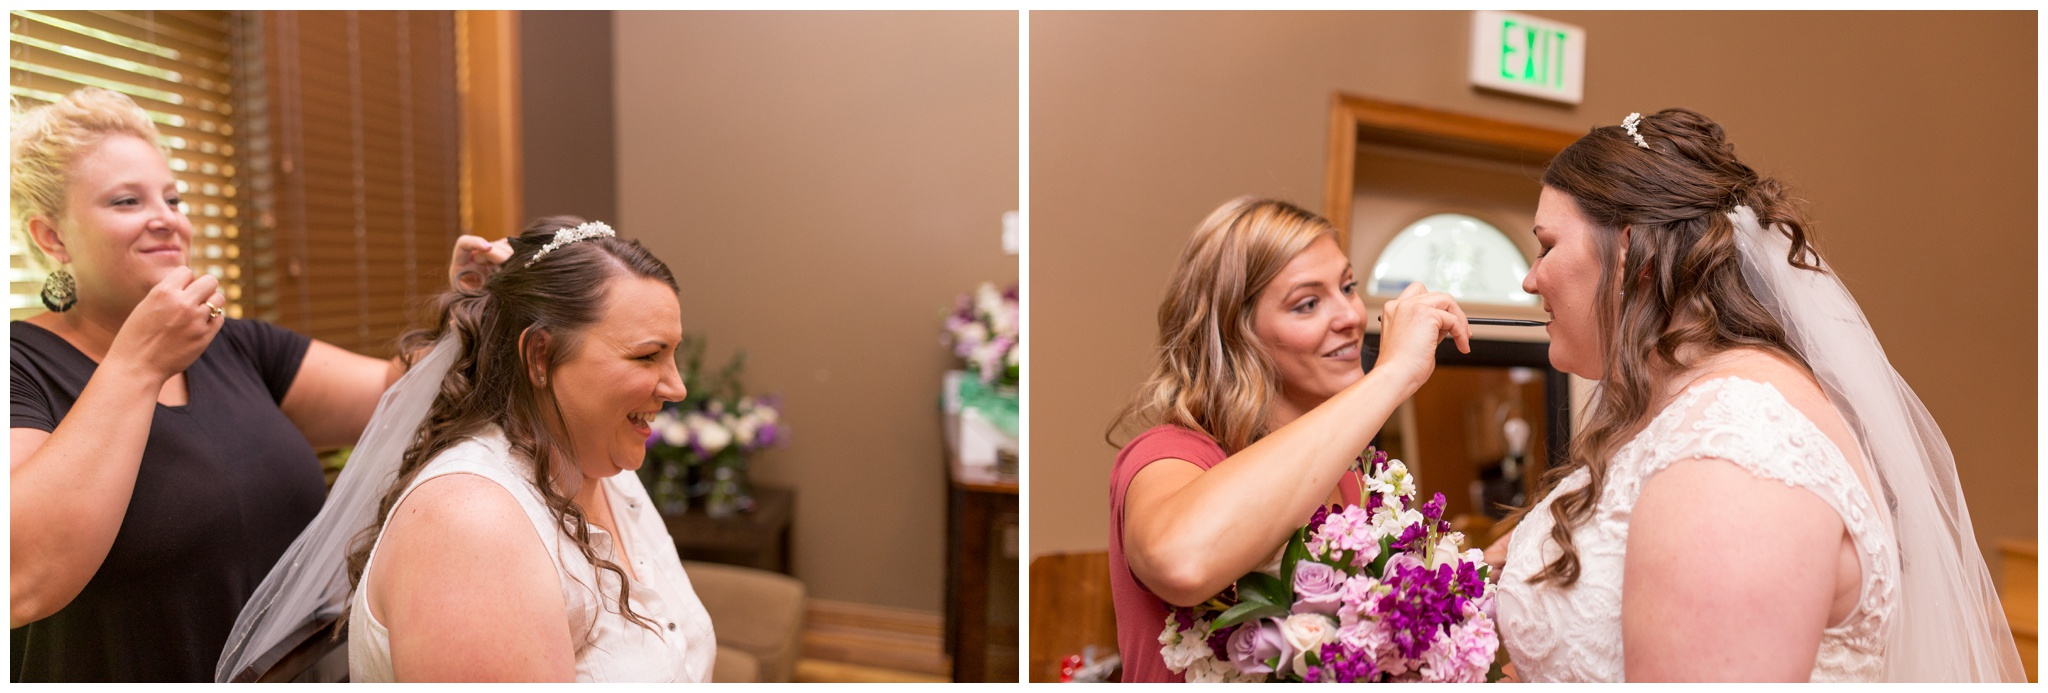 bride getting ready photos before Crossroads Community Church wedding in Kokomo Indiana